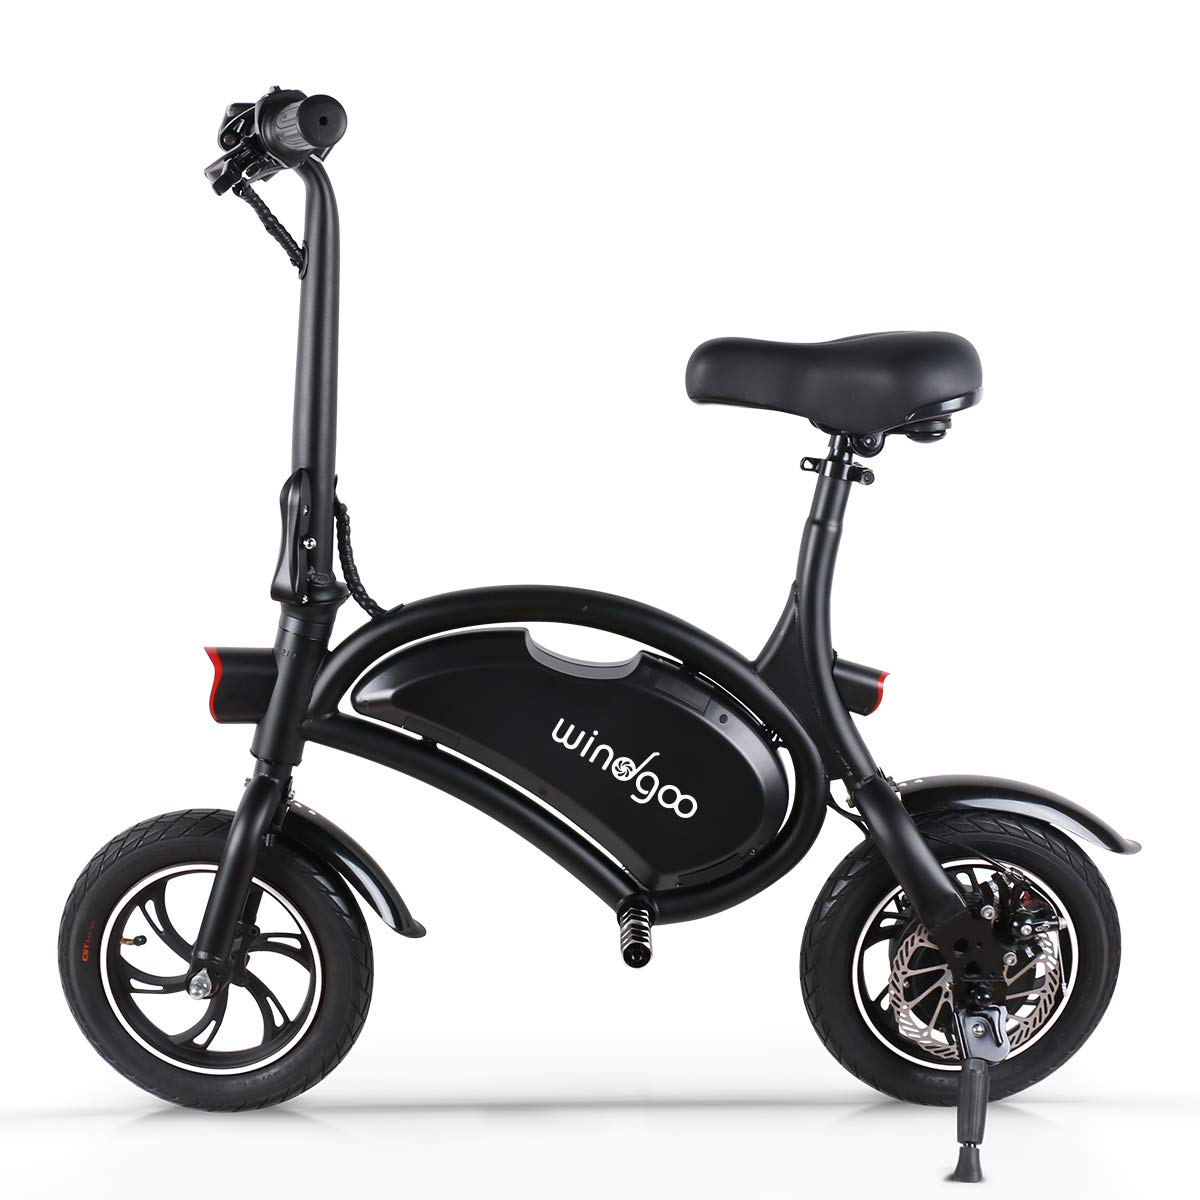 Disc Brake Electric Bike for Adults City Bicycle Max Speed 25 km//h 12 inch 36V E-bike with 6.0Ah Lithium Battery Foldable Electric Bicycle Commute Ebike with 250W Motor